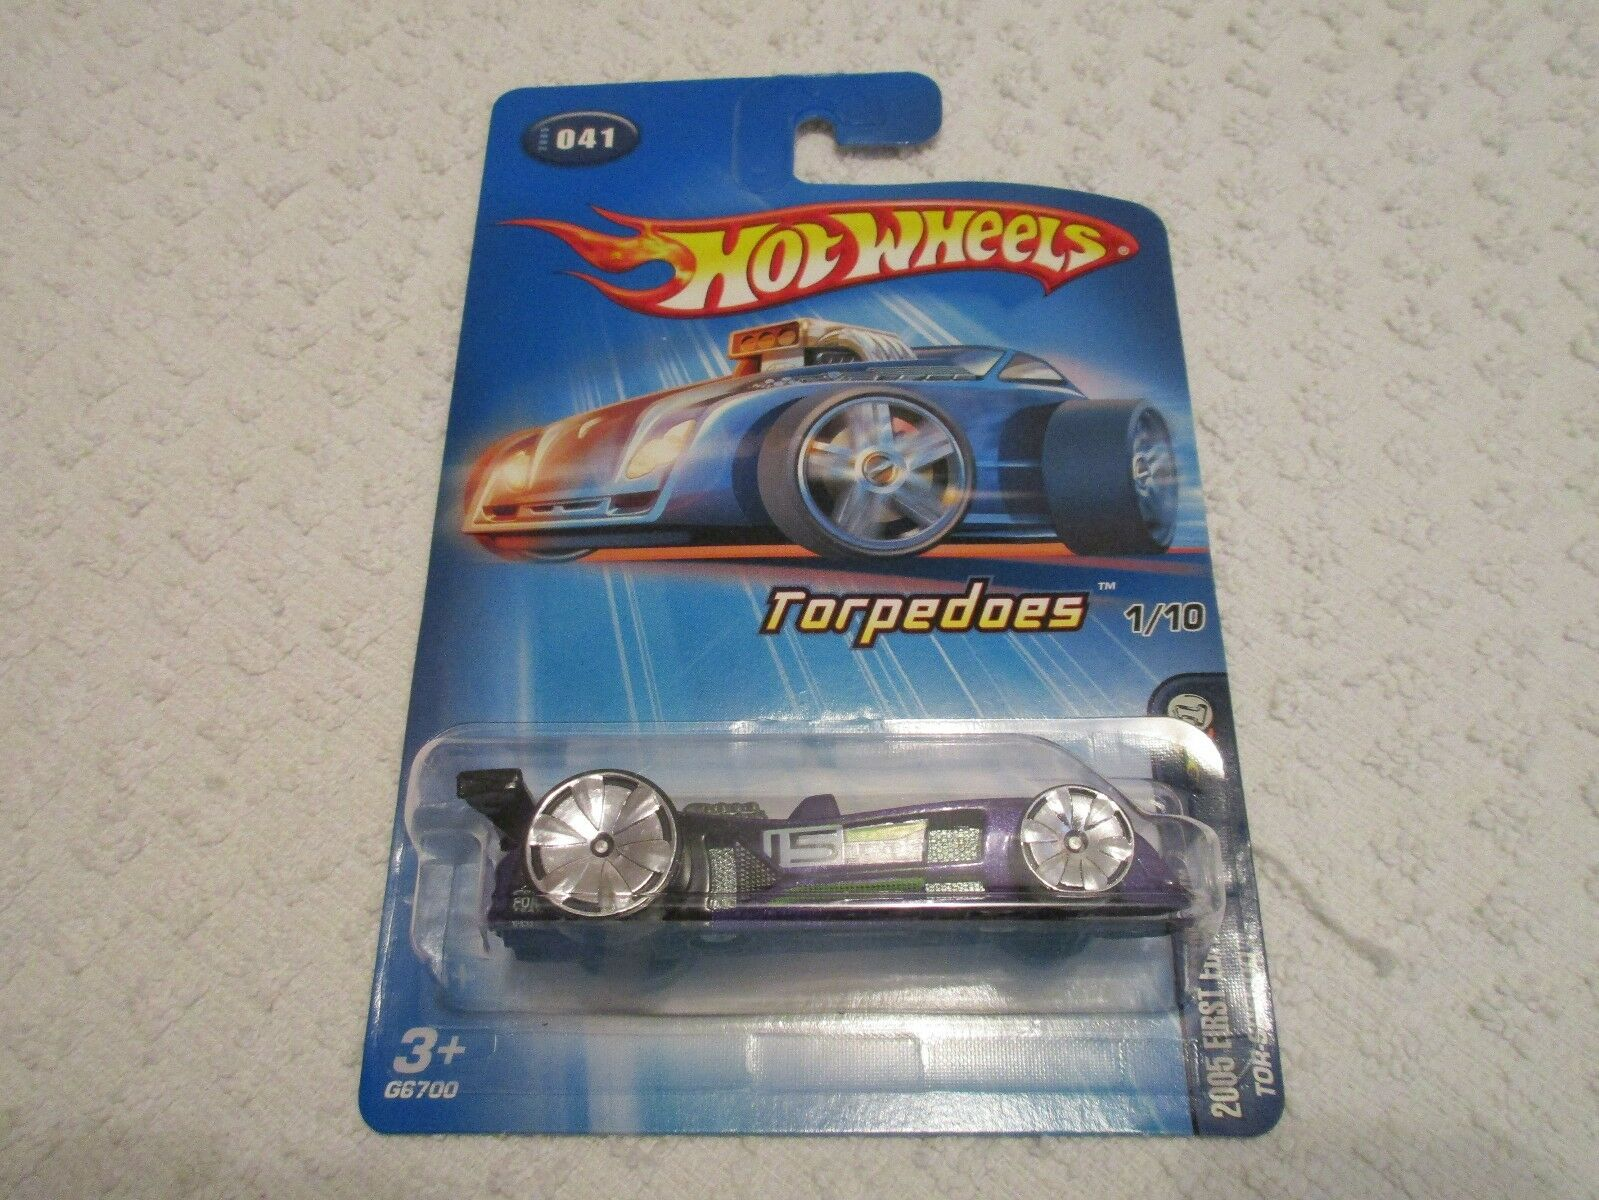 Hot Wtalons Torpedoes 2005 First Editions Tor-Speedo  Special Rims  041 violet  plus abordable